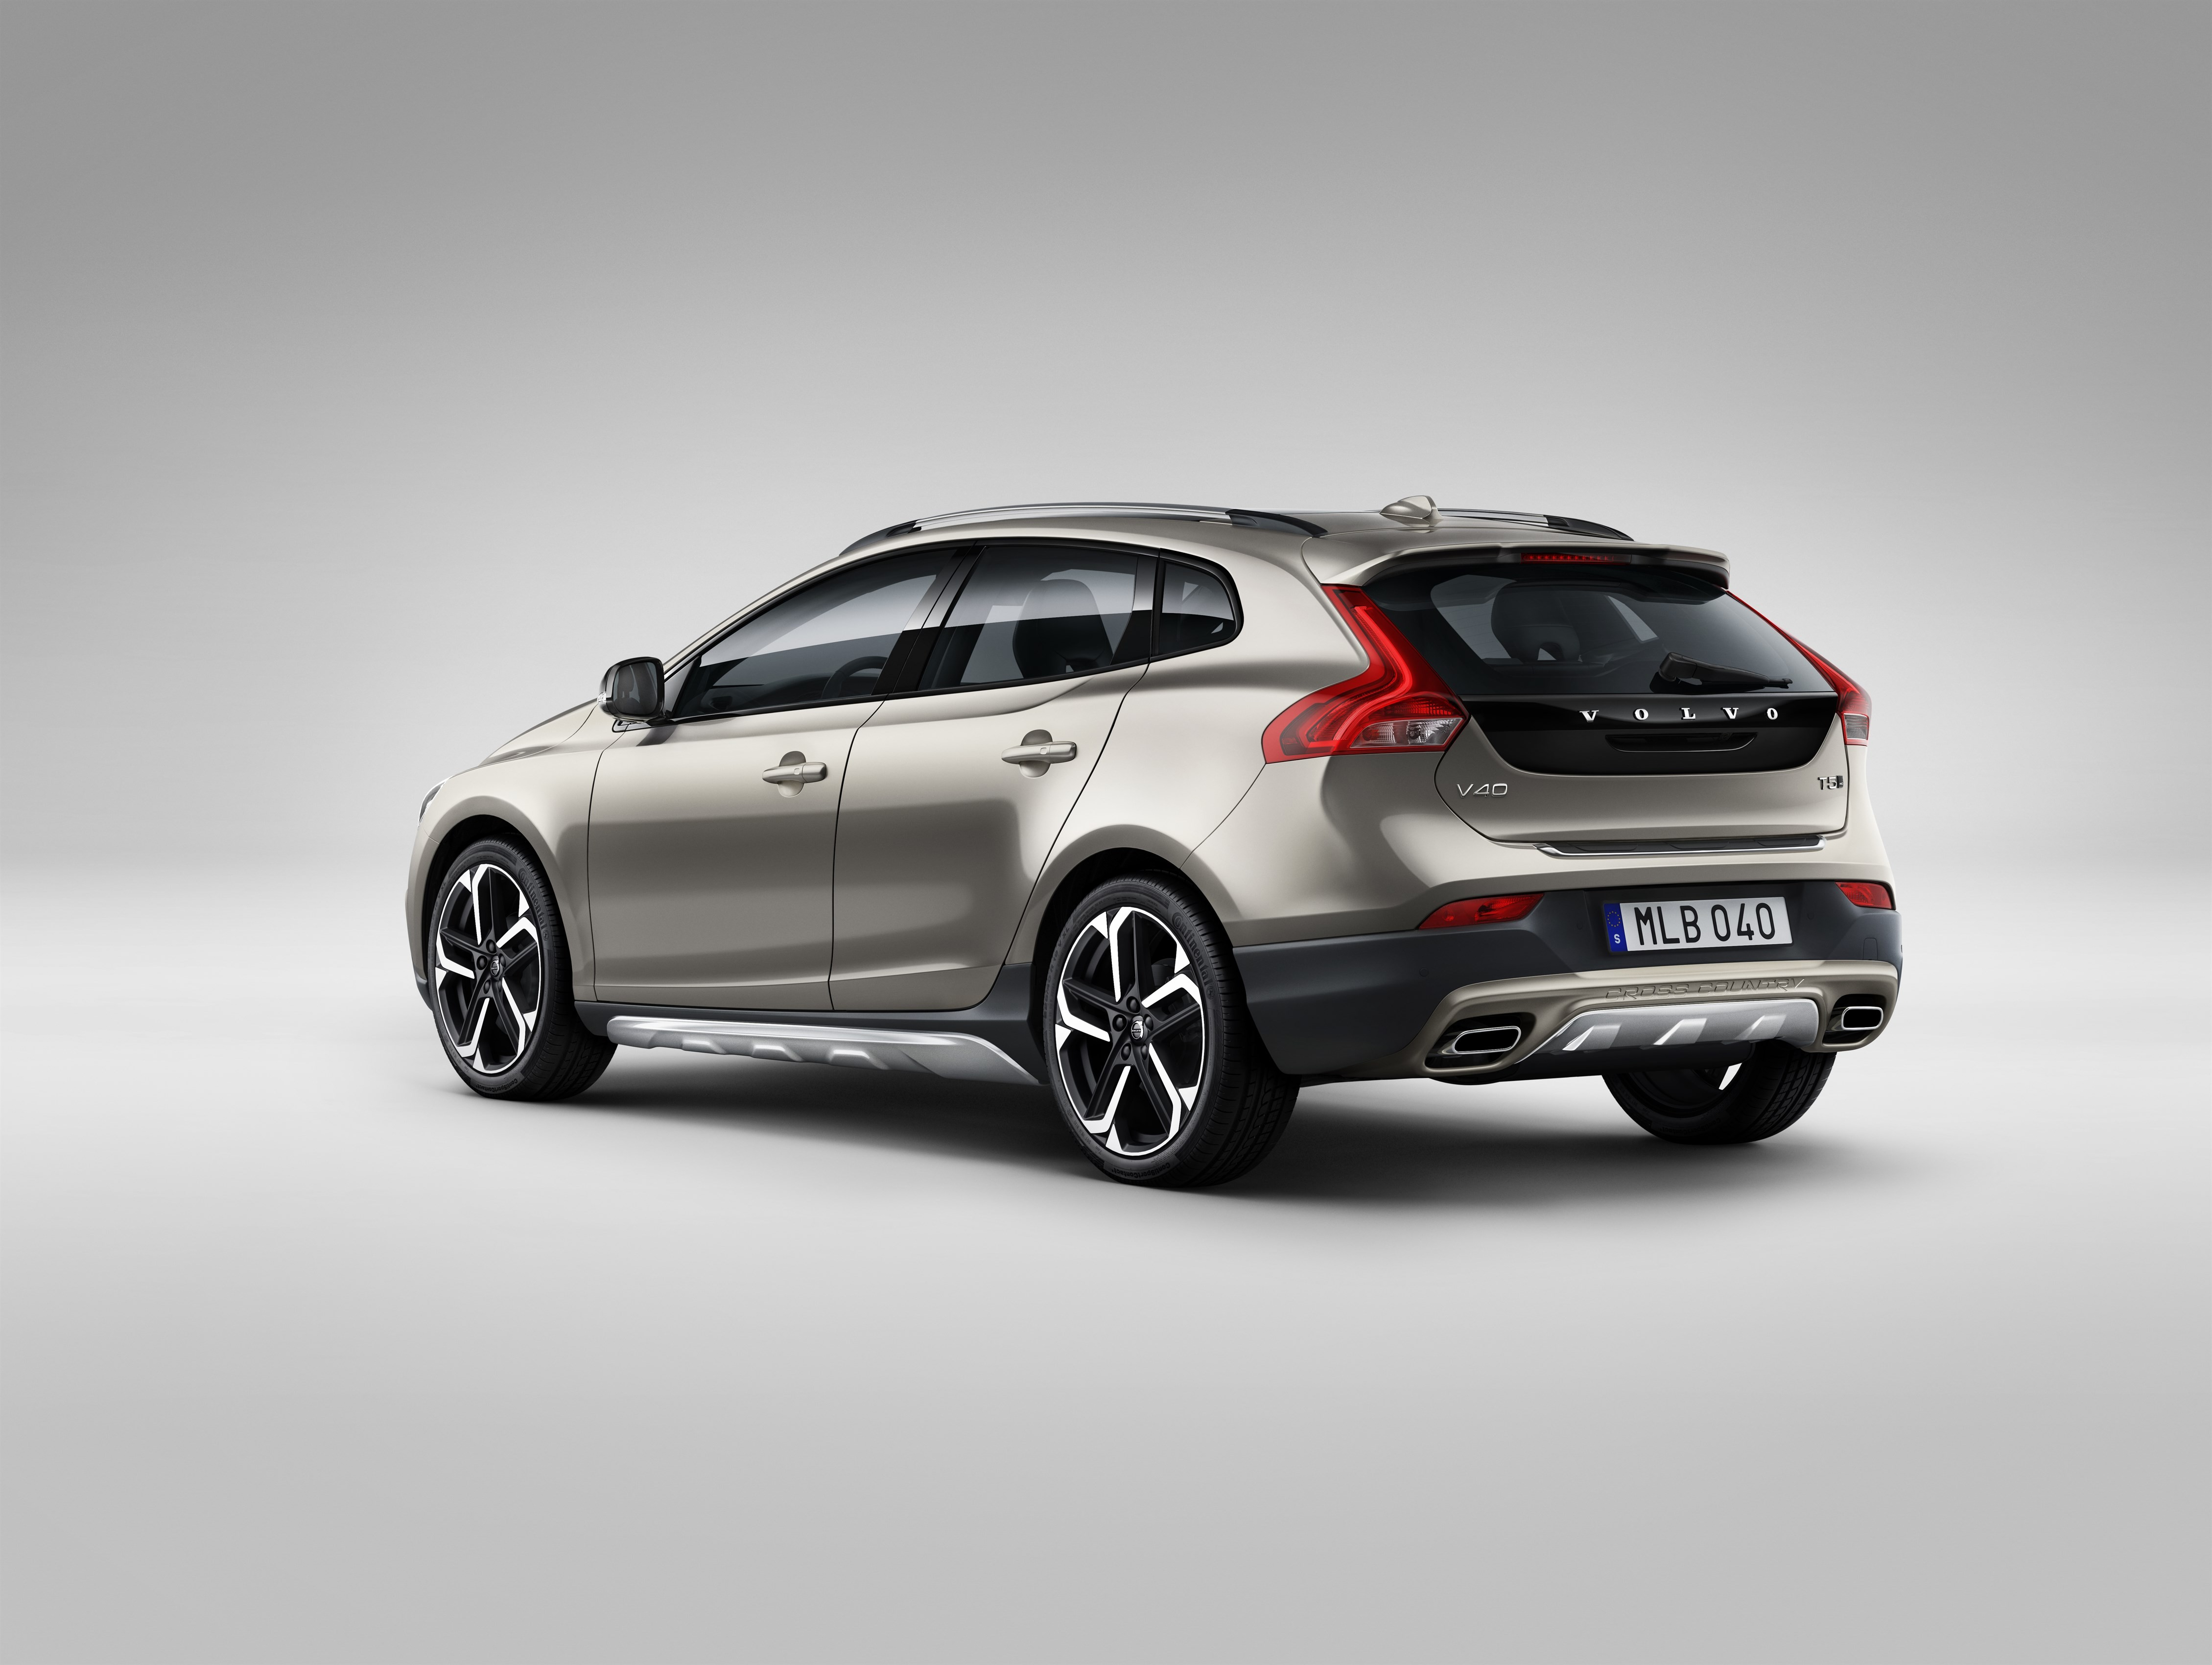 Volvo to introduce performance division c30 polestar pcp for Exterior design elements